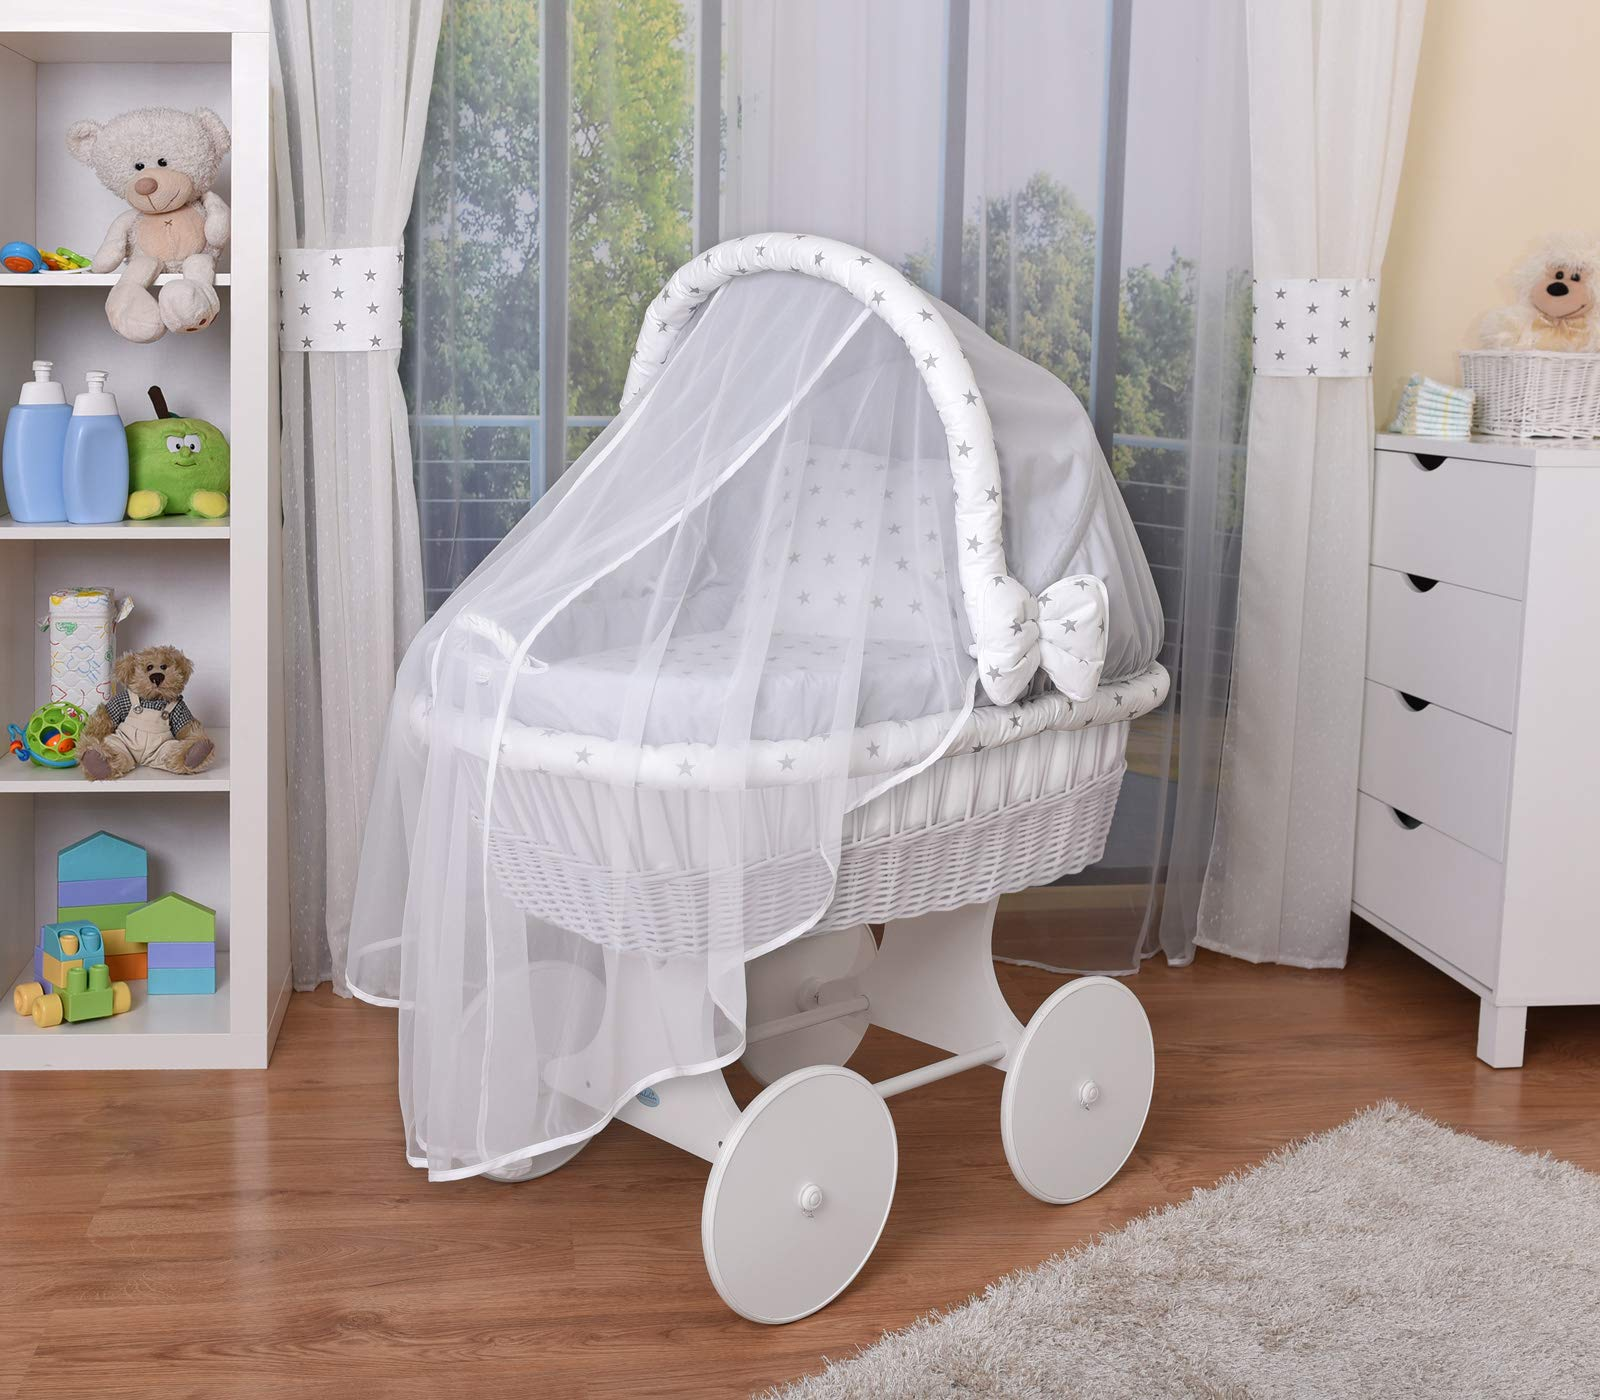 WALDIN Baby Wicker Cradle,Moses Basket,44 Models Available,White Painted Stand/Wheels,Textile Colour Grey/Grey Stars  For more models and colours on Amazon click on WALDIN under the title Bassinet complete with bedding and stand Certified to safety standard EN 1130-1/2 2